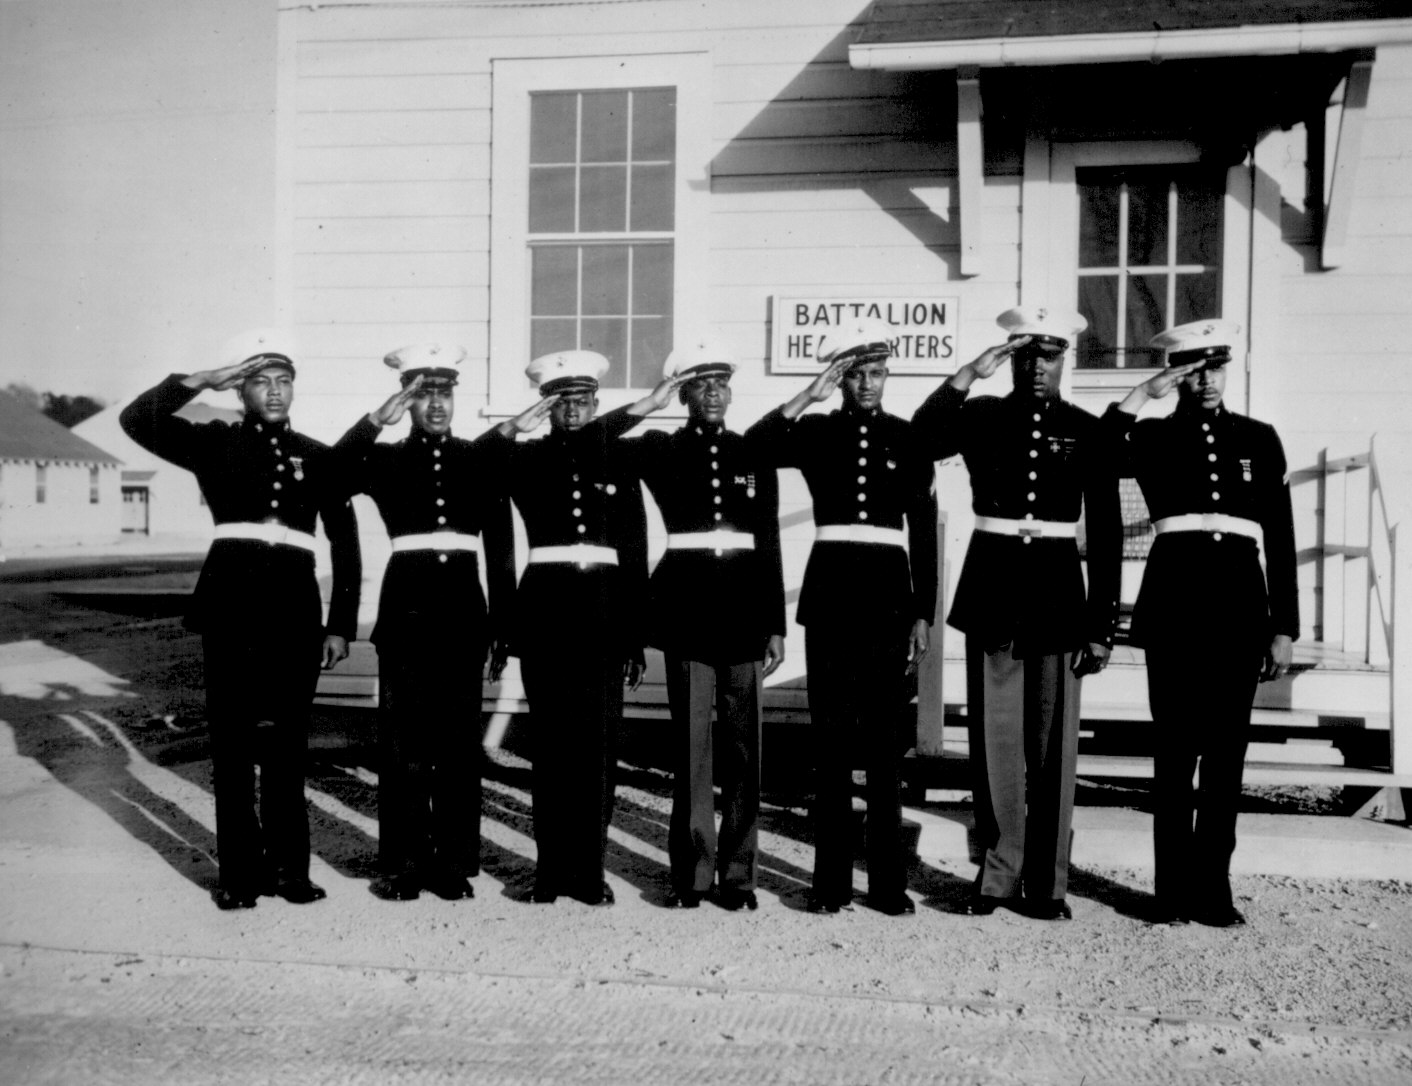 First black Marines mark 75th anniversary of the segregated boot camp